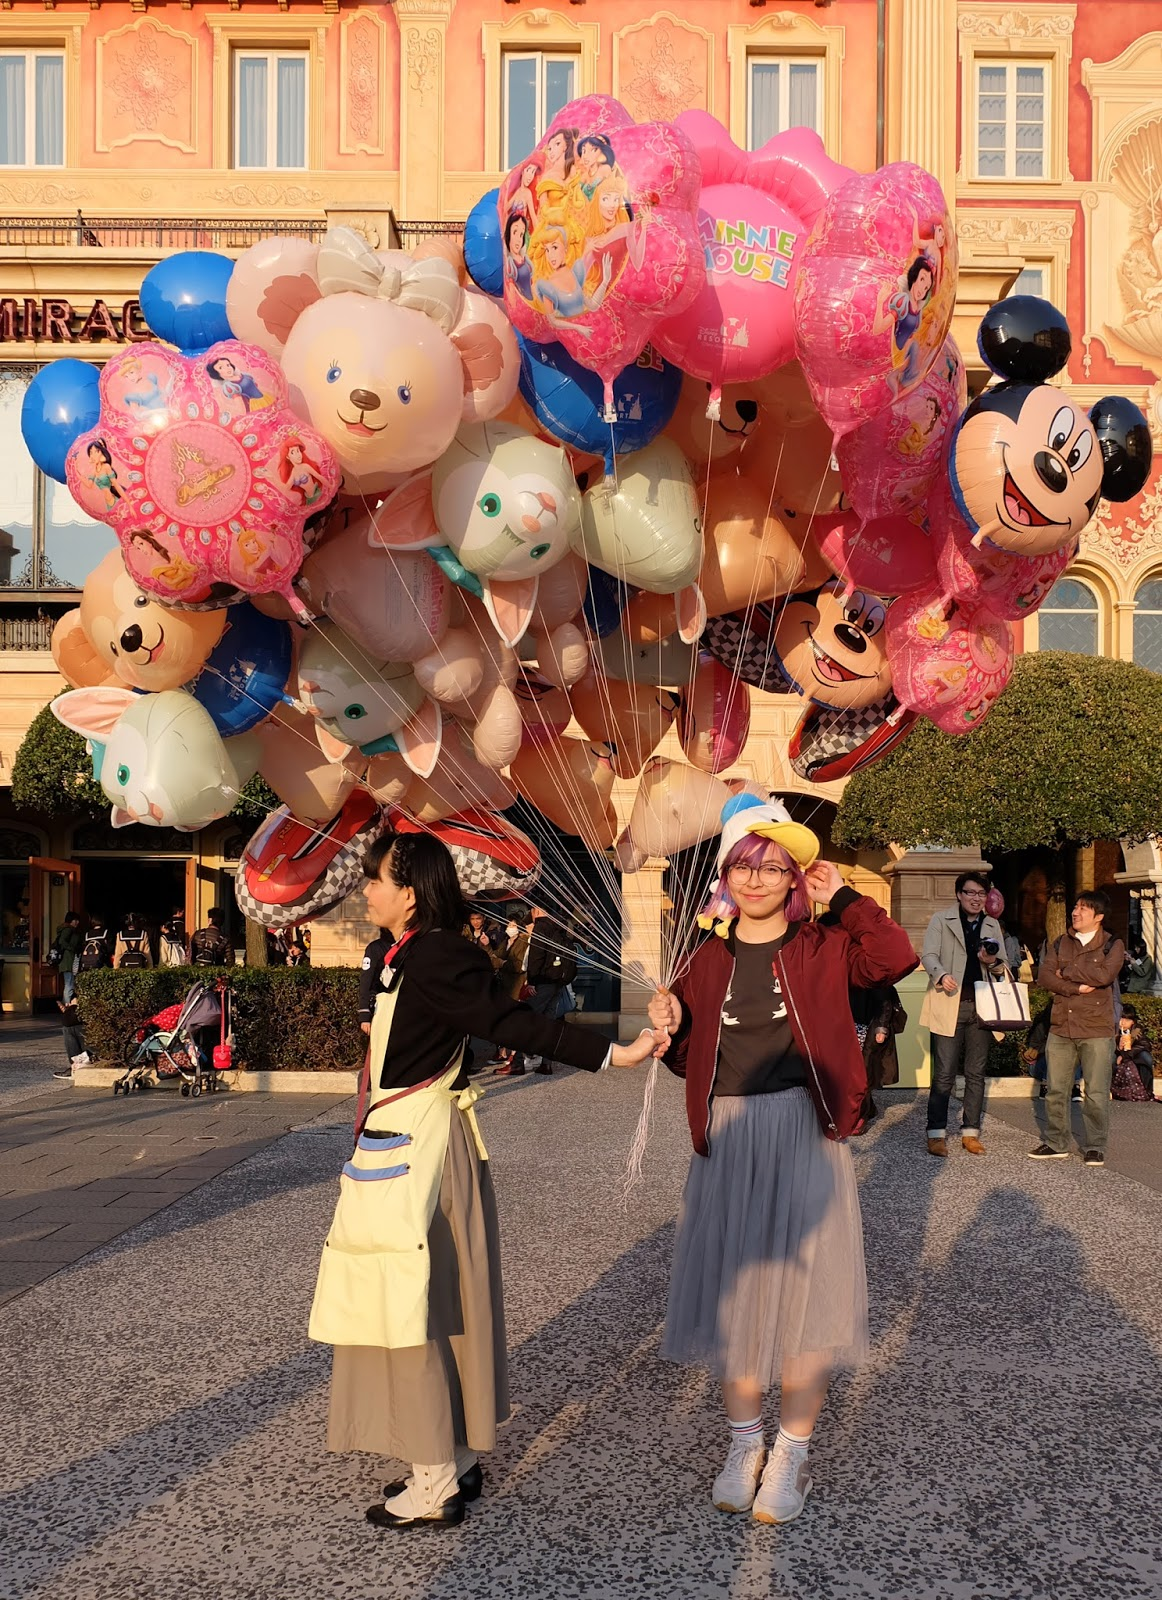 Tips to Visit DisneySea Disneyland Happiest Place on Earth | www.bigdreamerblog.com